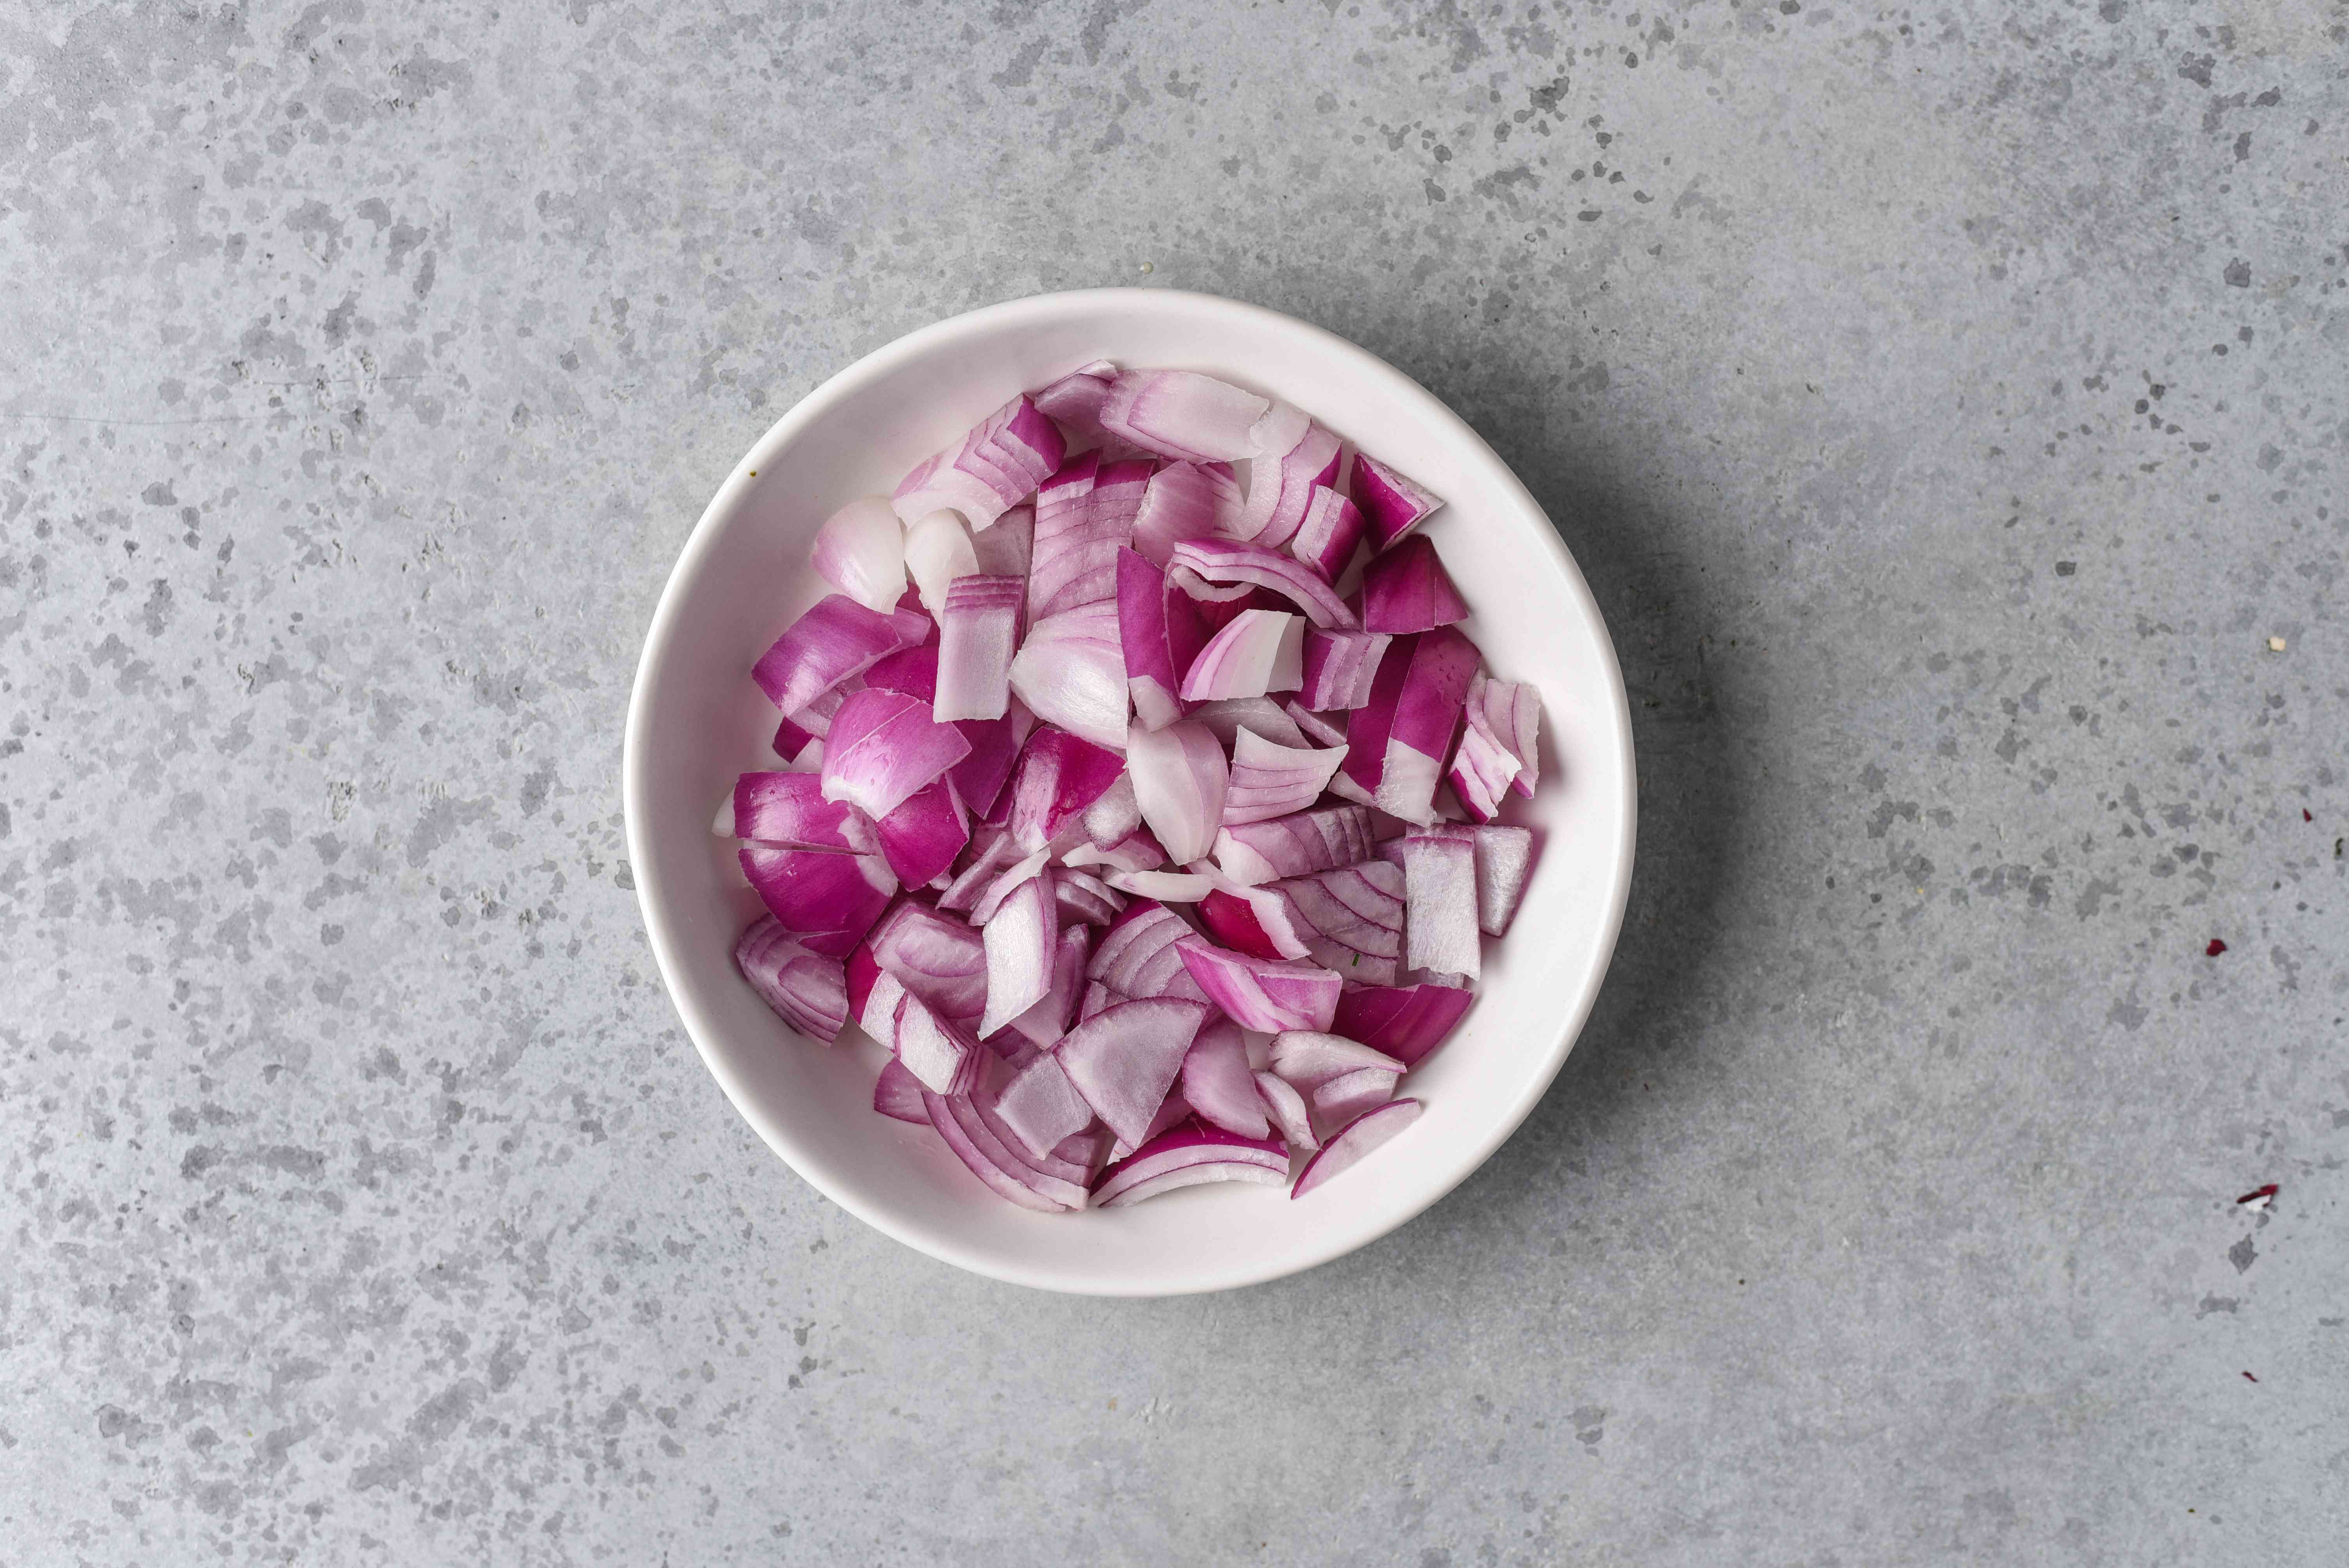 red onion pieces in a bowl